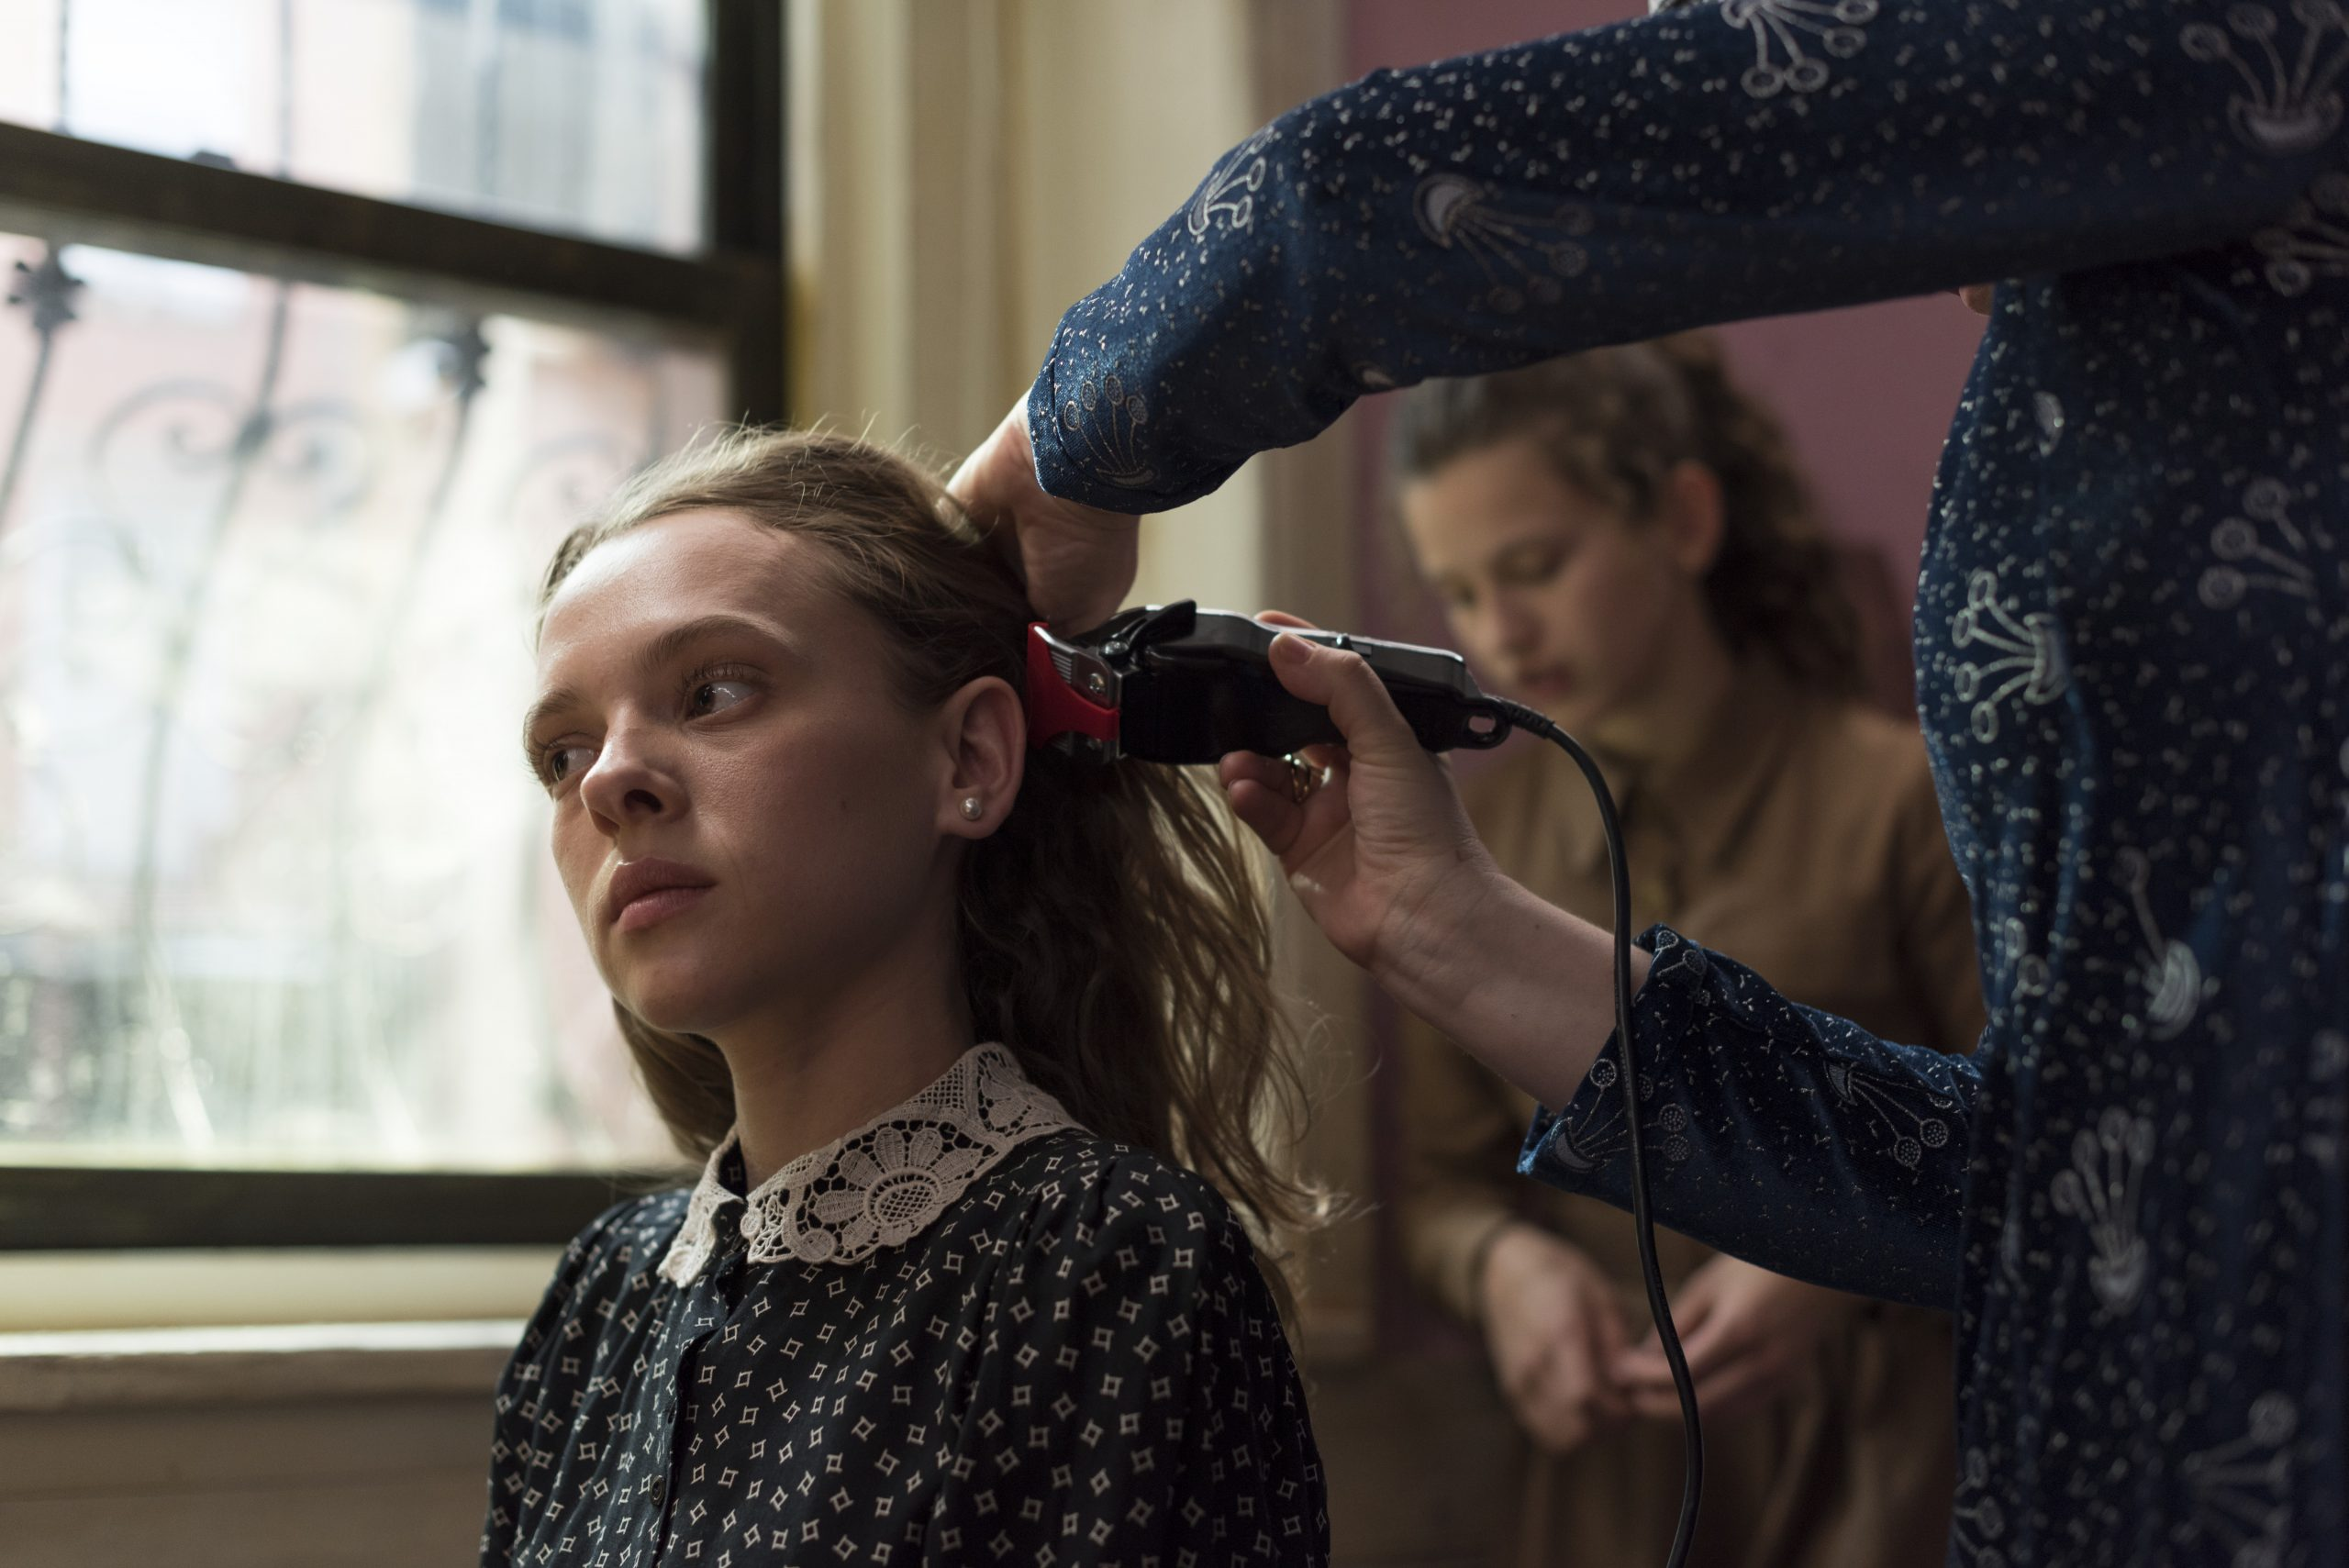 Esty is getting shaved by a woman after her marriage